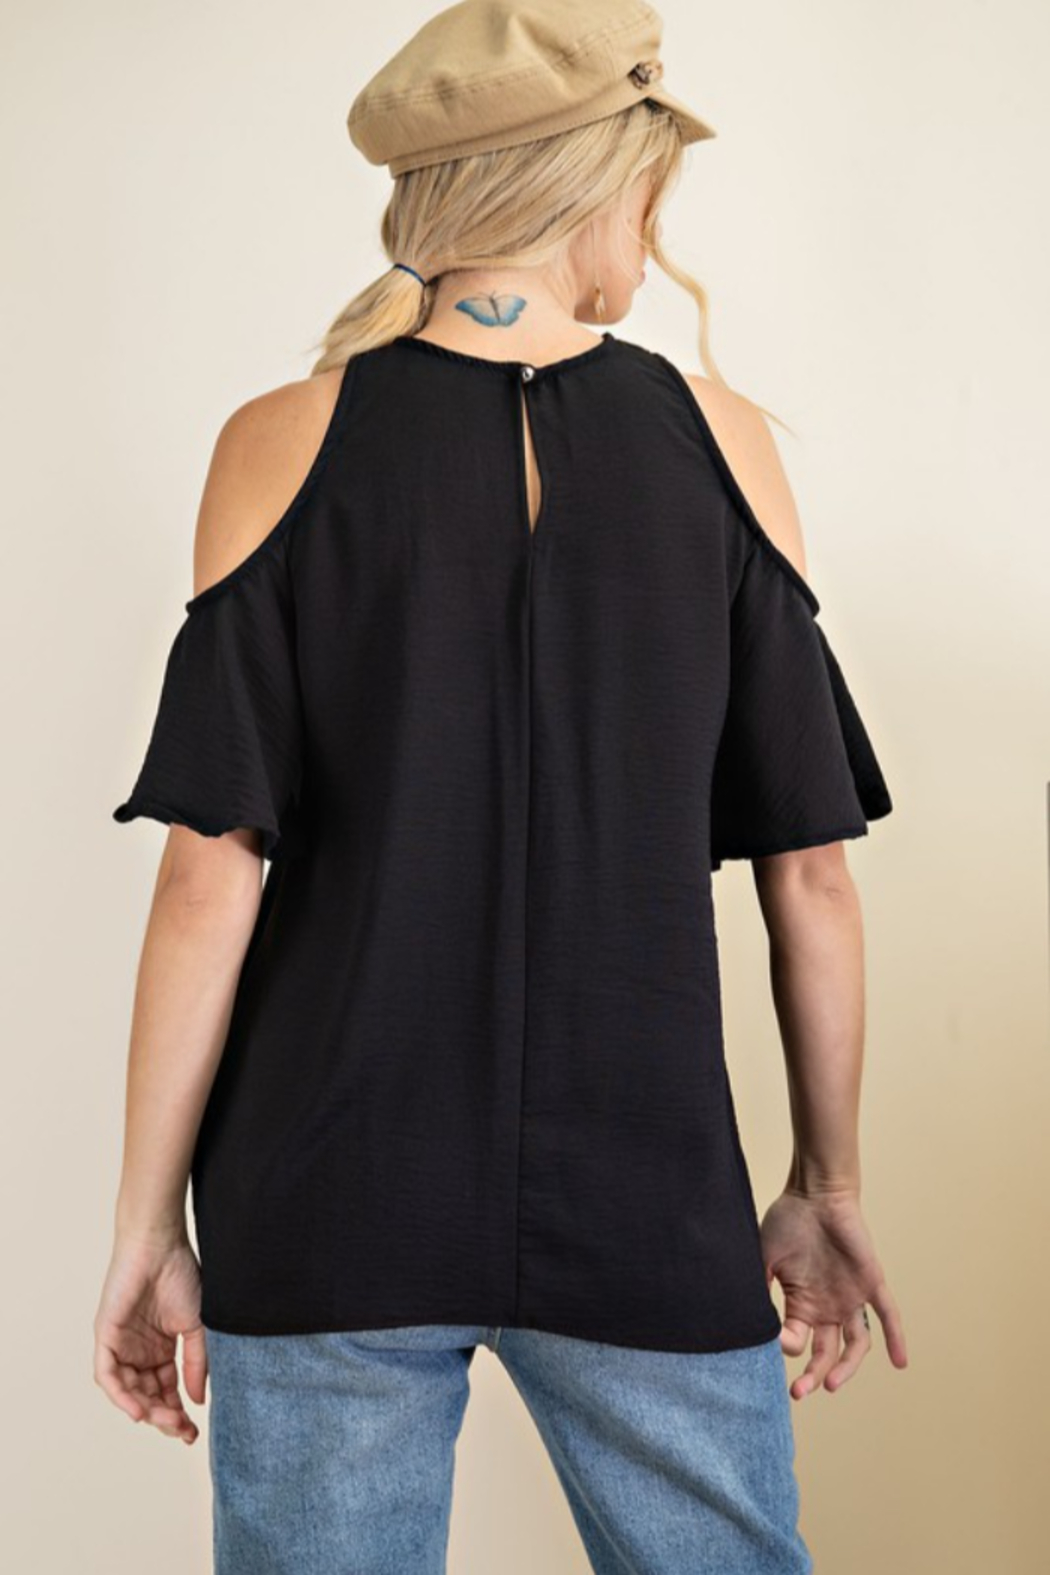 143 Story Criss Cross Neck Flare Sleeve Top - Front Full Image